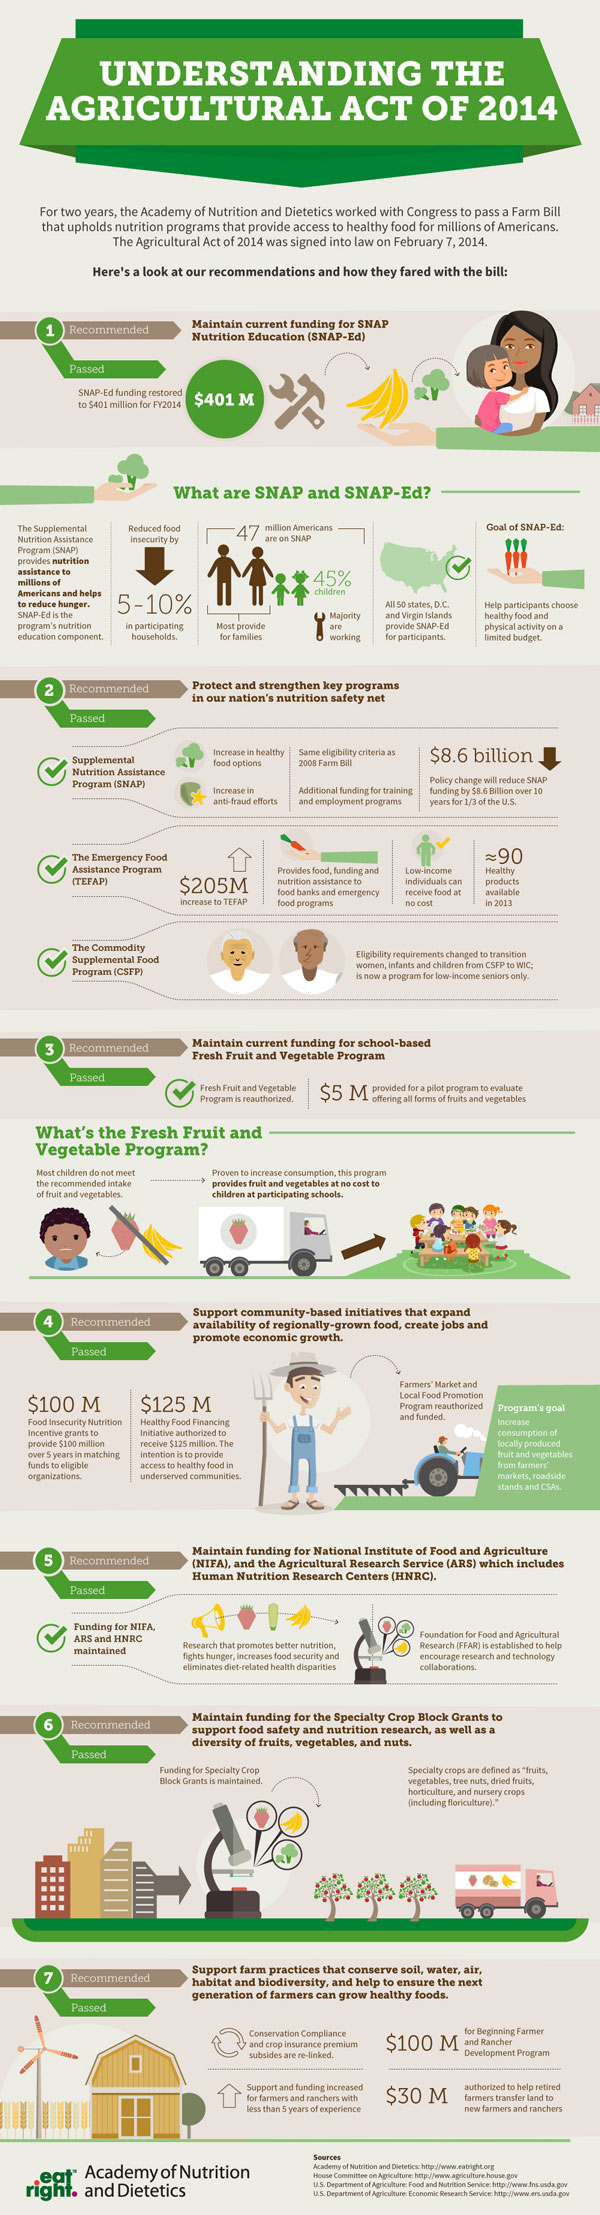 A smaller version of the Farm Bill: Understanding the Agricultural Act of 2014 Infographic